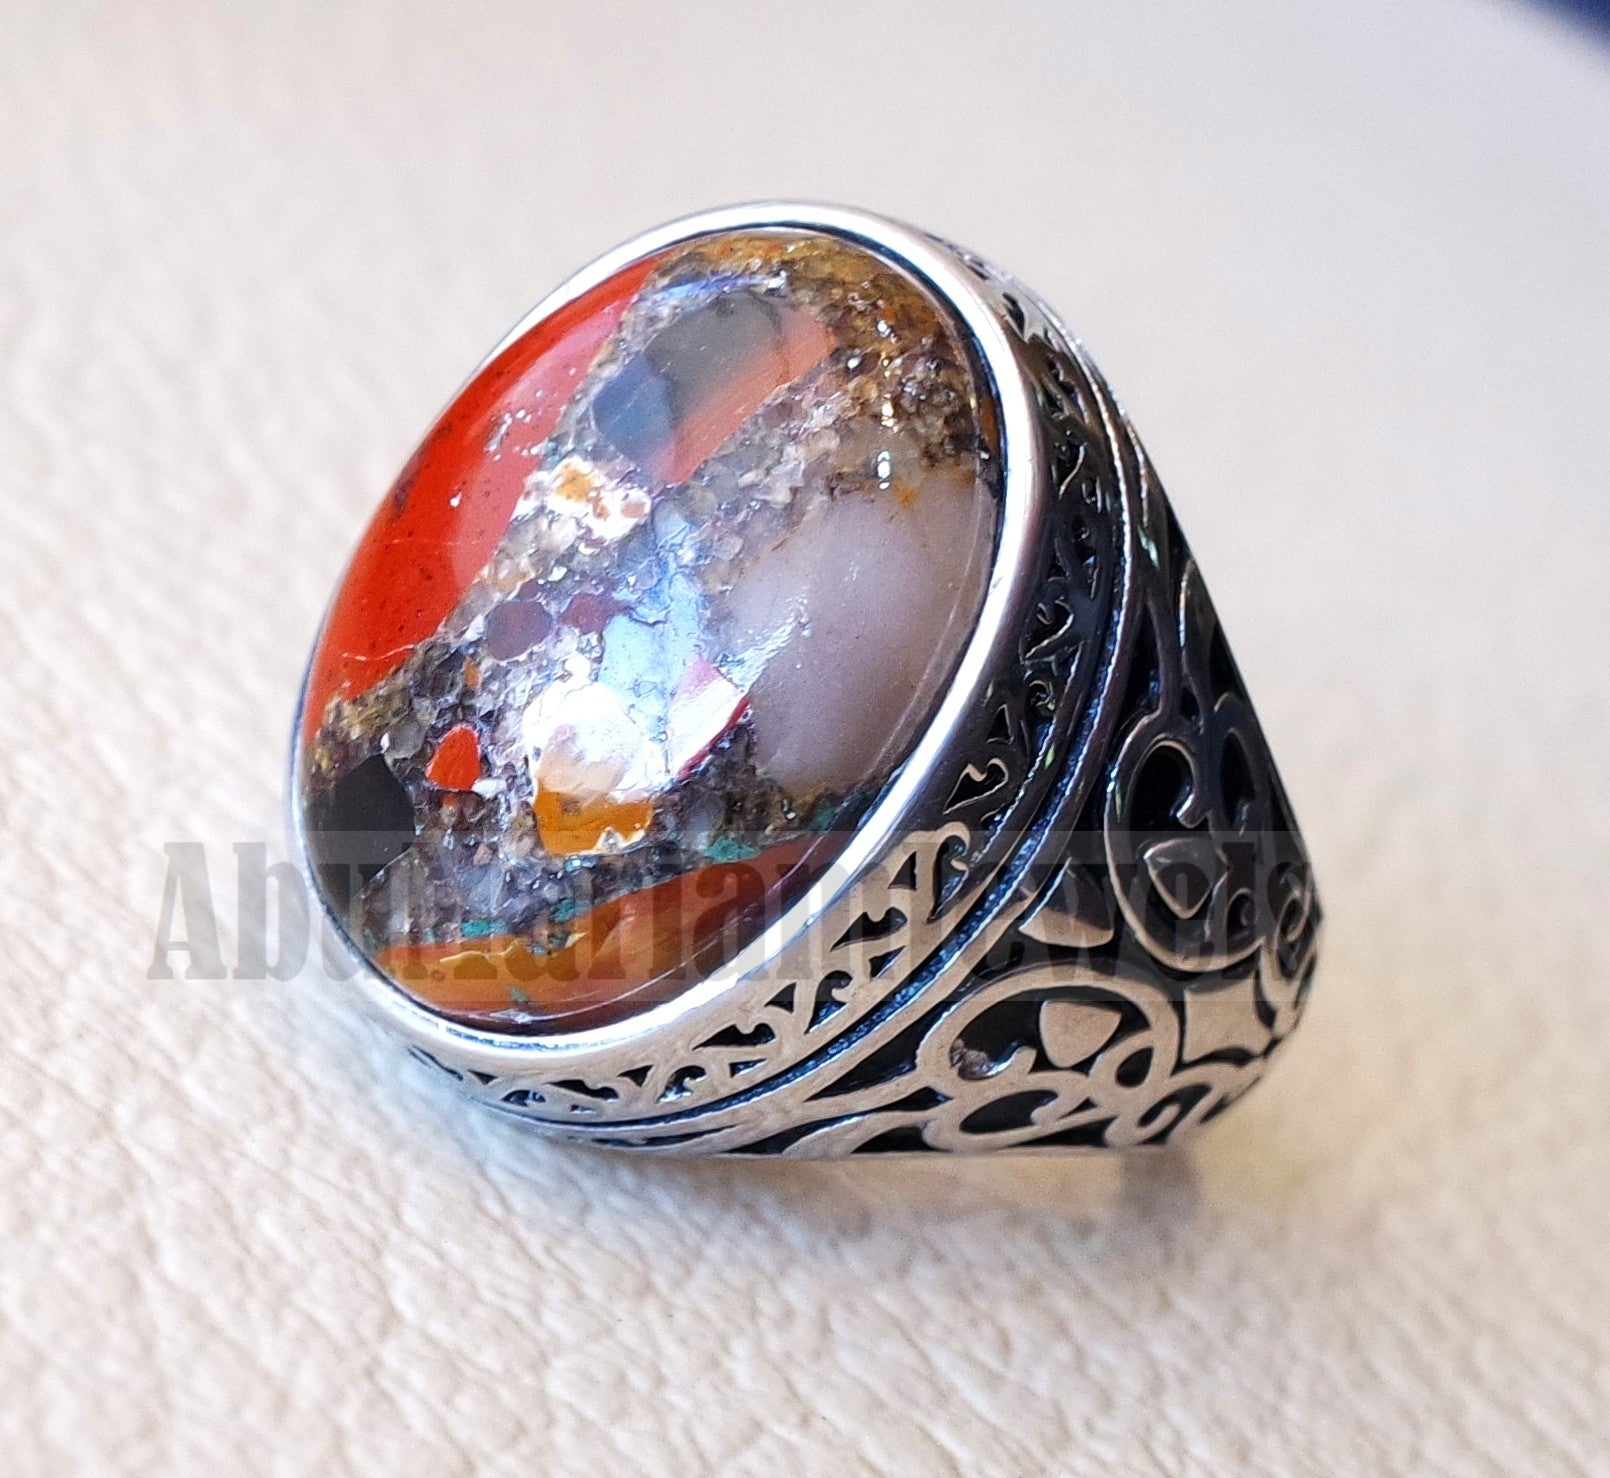 man ring Conglomerate natural stone sterling silver 925 oval cabochon semi precious gem ottoman style all sizes jewelry red brown white